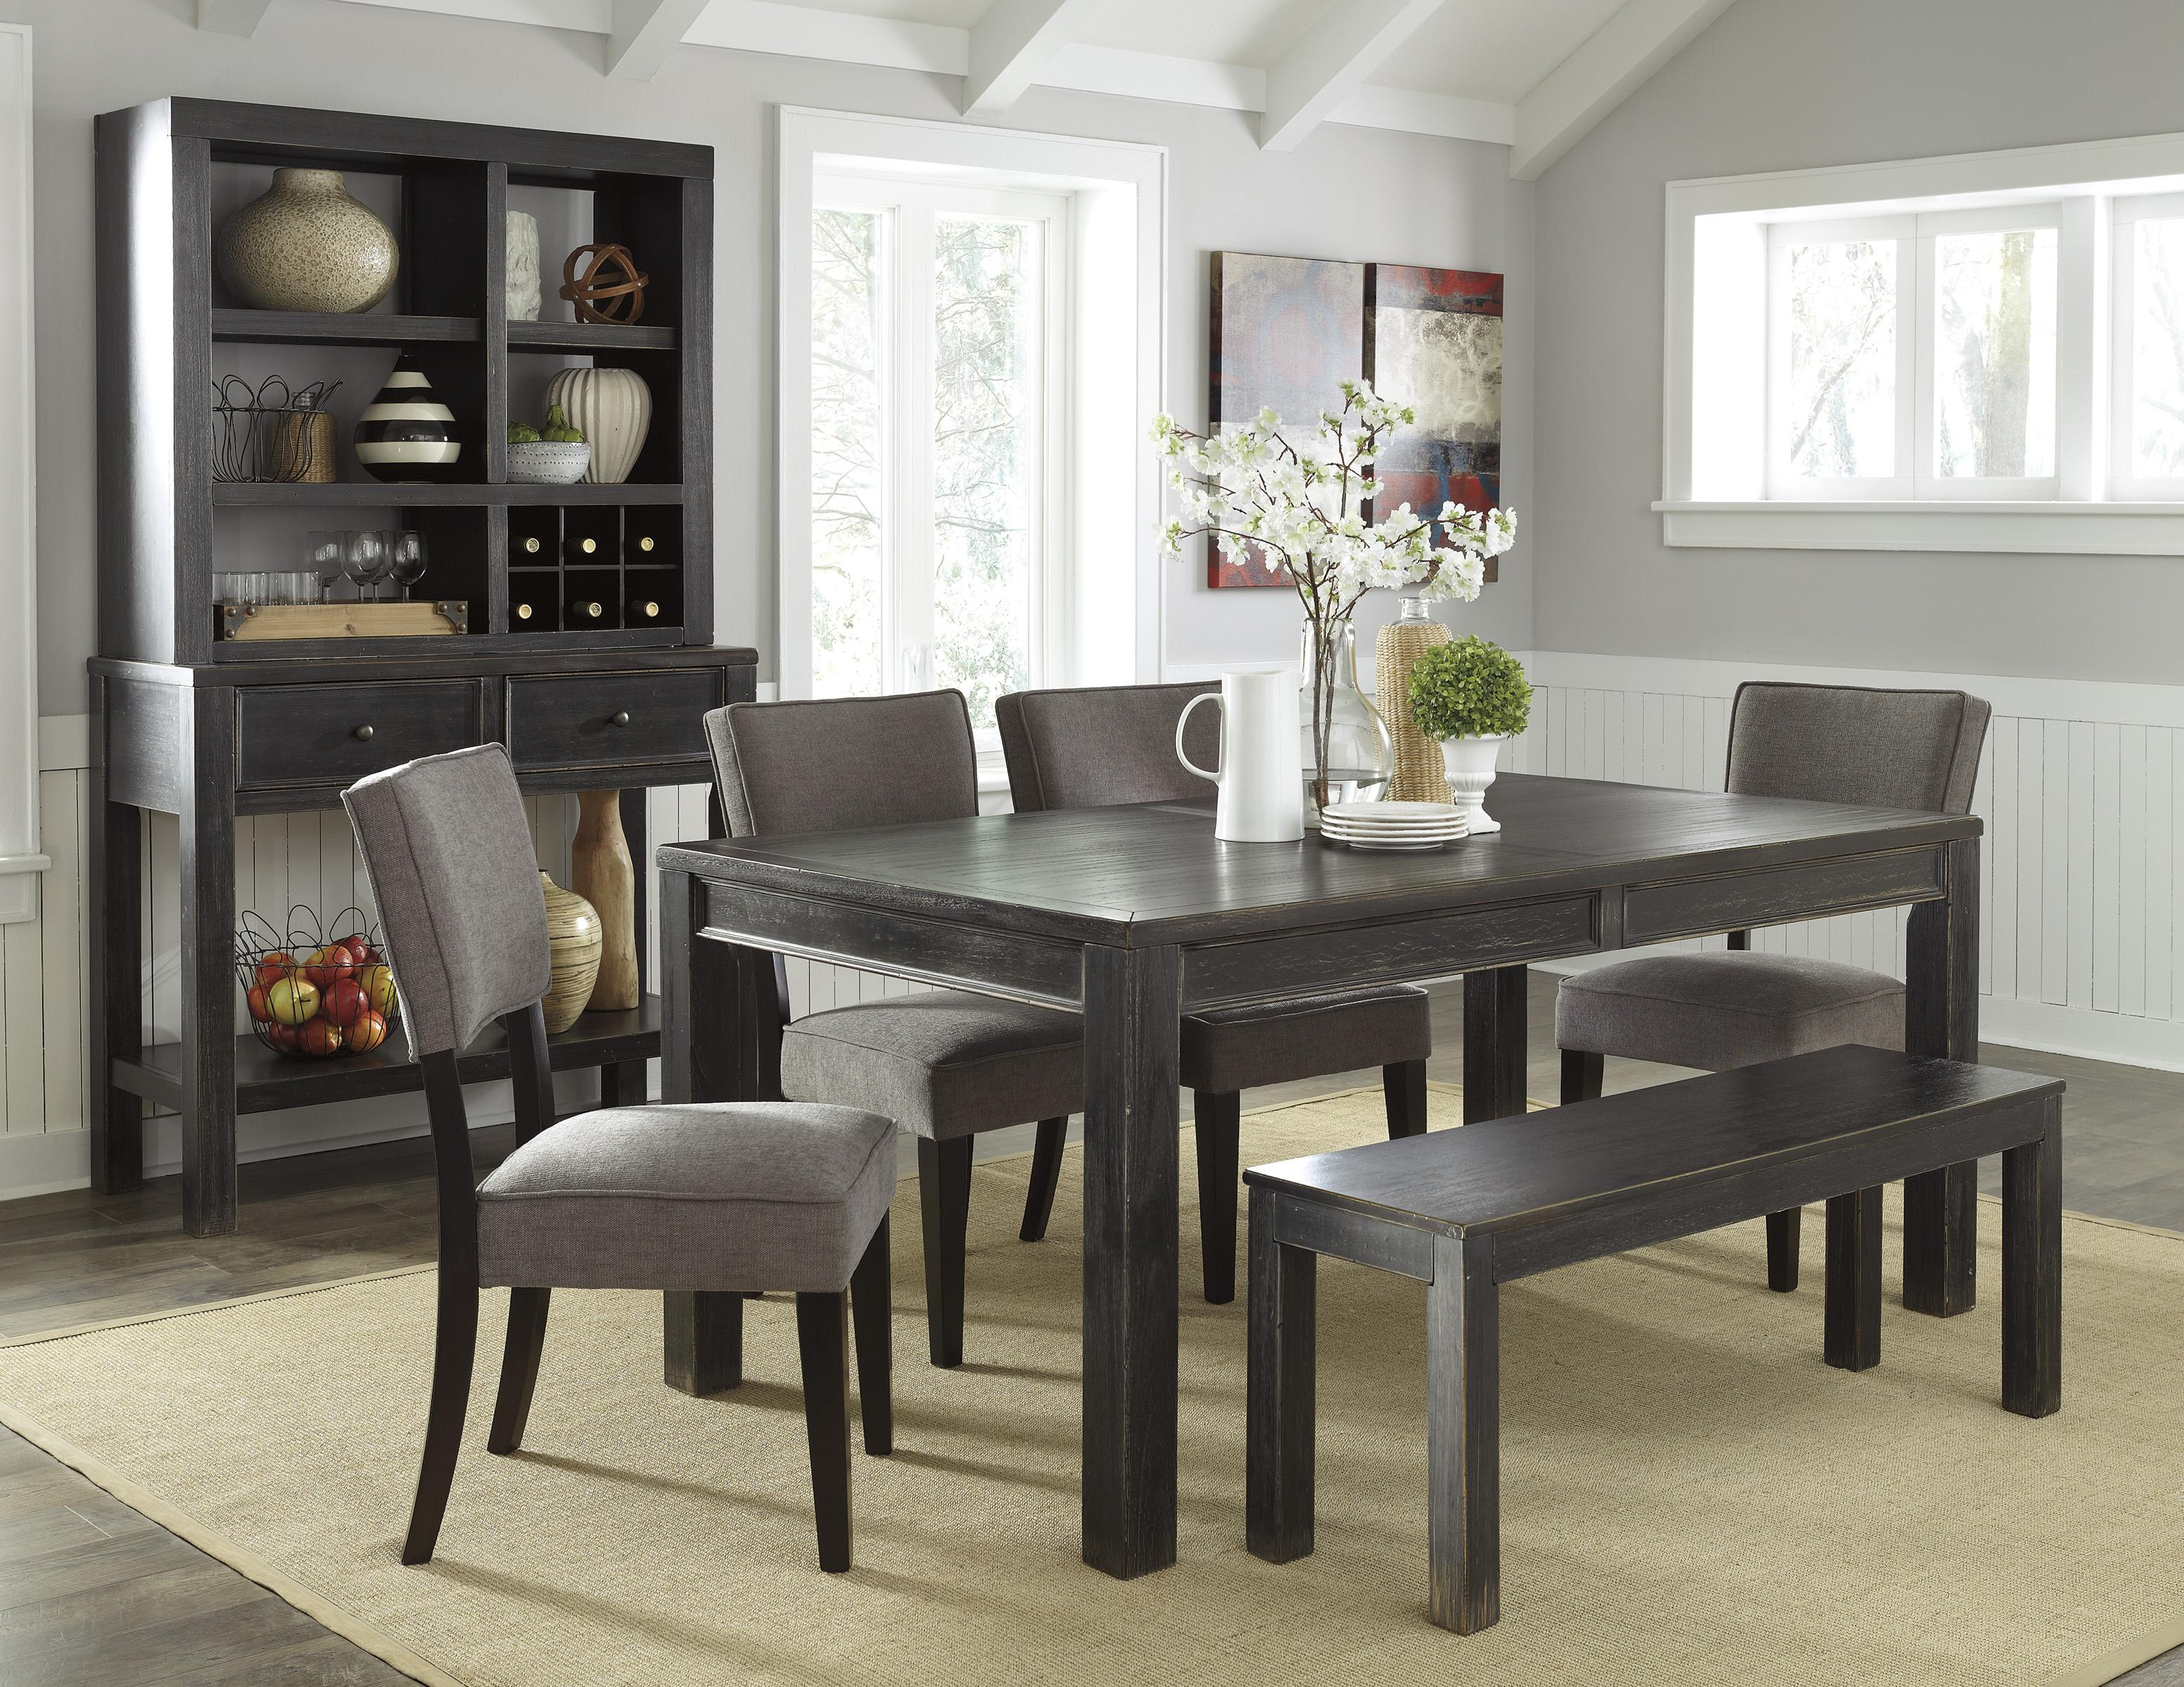 Signature Design by Ashley Gavelston Casual Dining Room Group - Item Number: D532 Dining Room Group 8